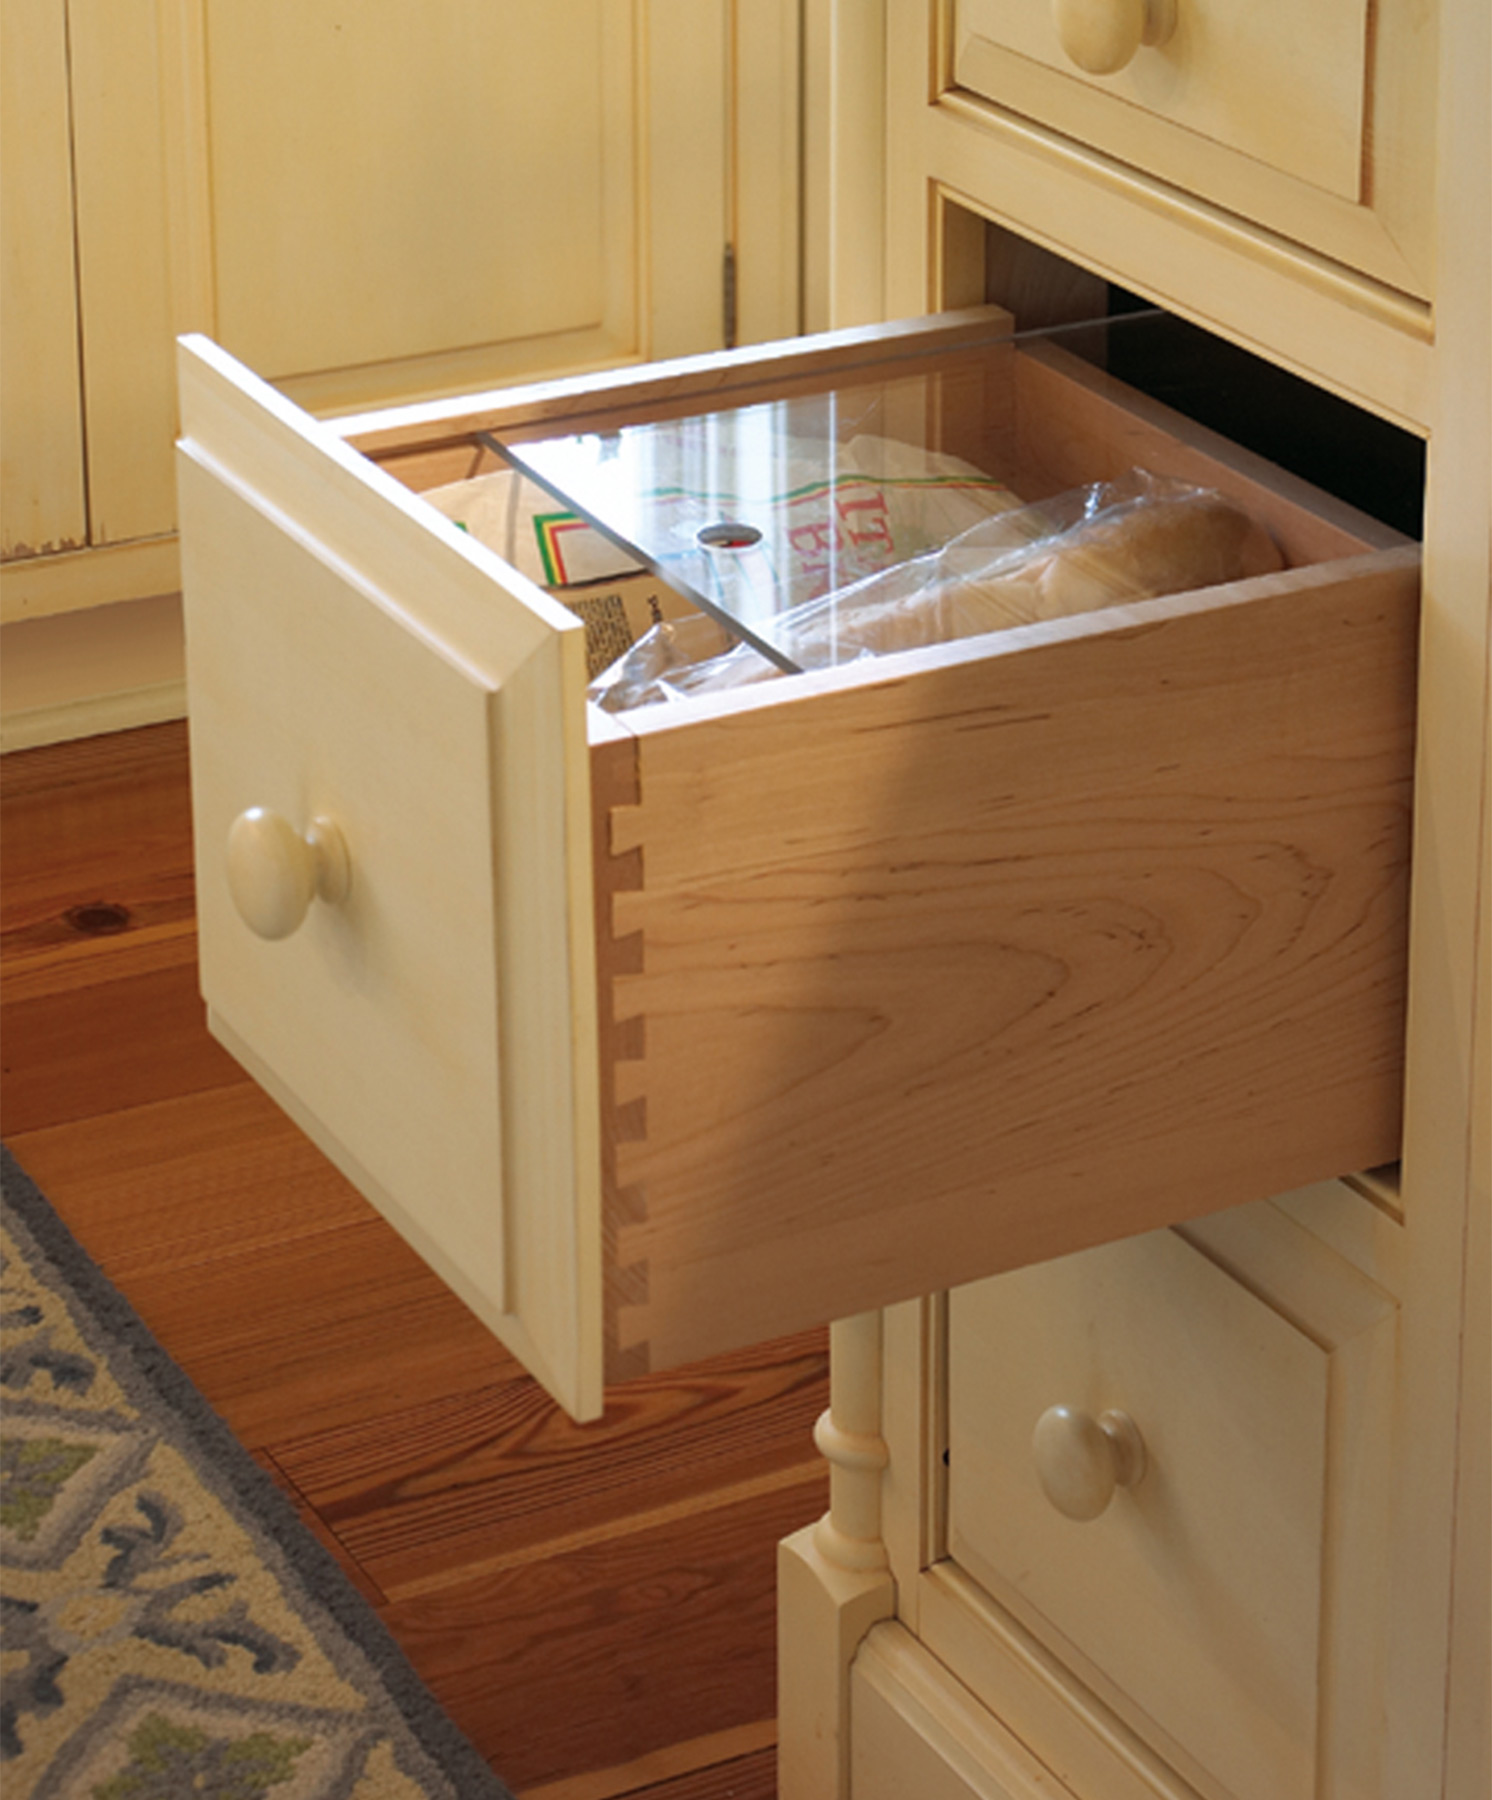 Drawers Instead Of Kitchen Cabinets: Kitchen Cabinet Accessories